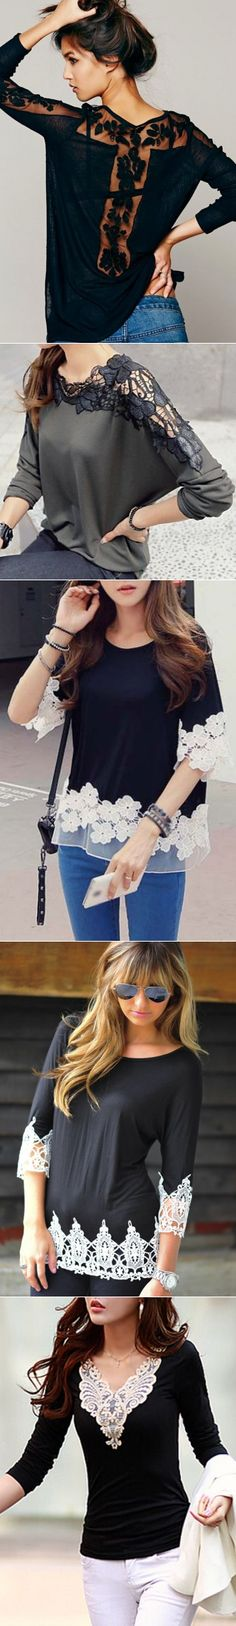 SWEATER, T-SHIRT AND LACE, CHANGES...♥ Deniz ♥